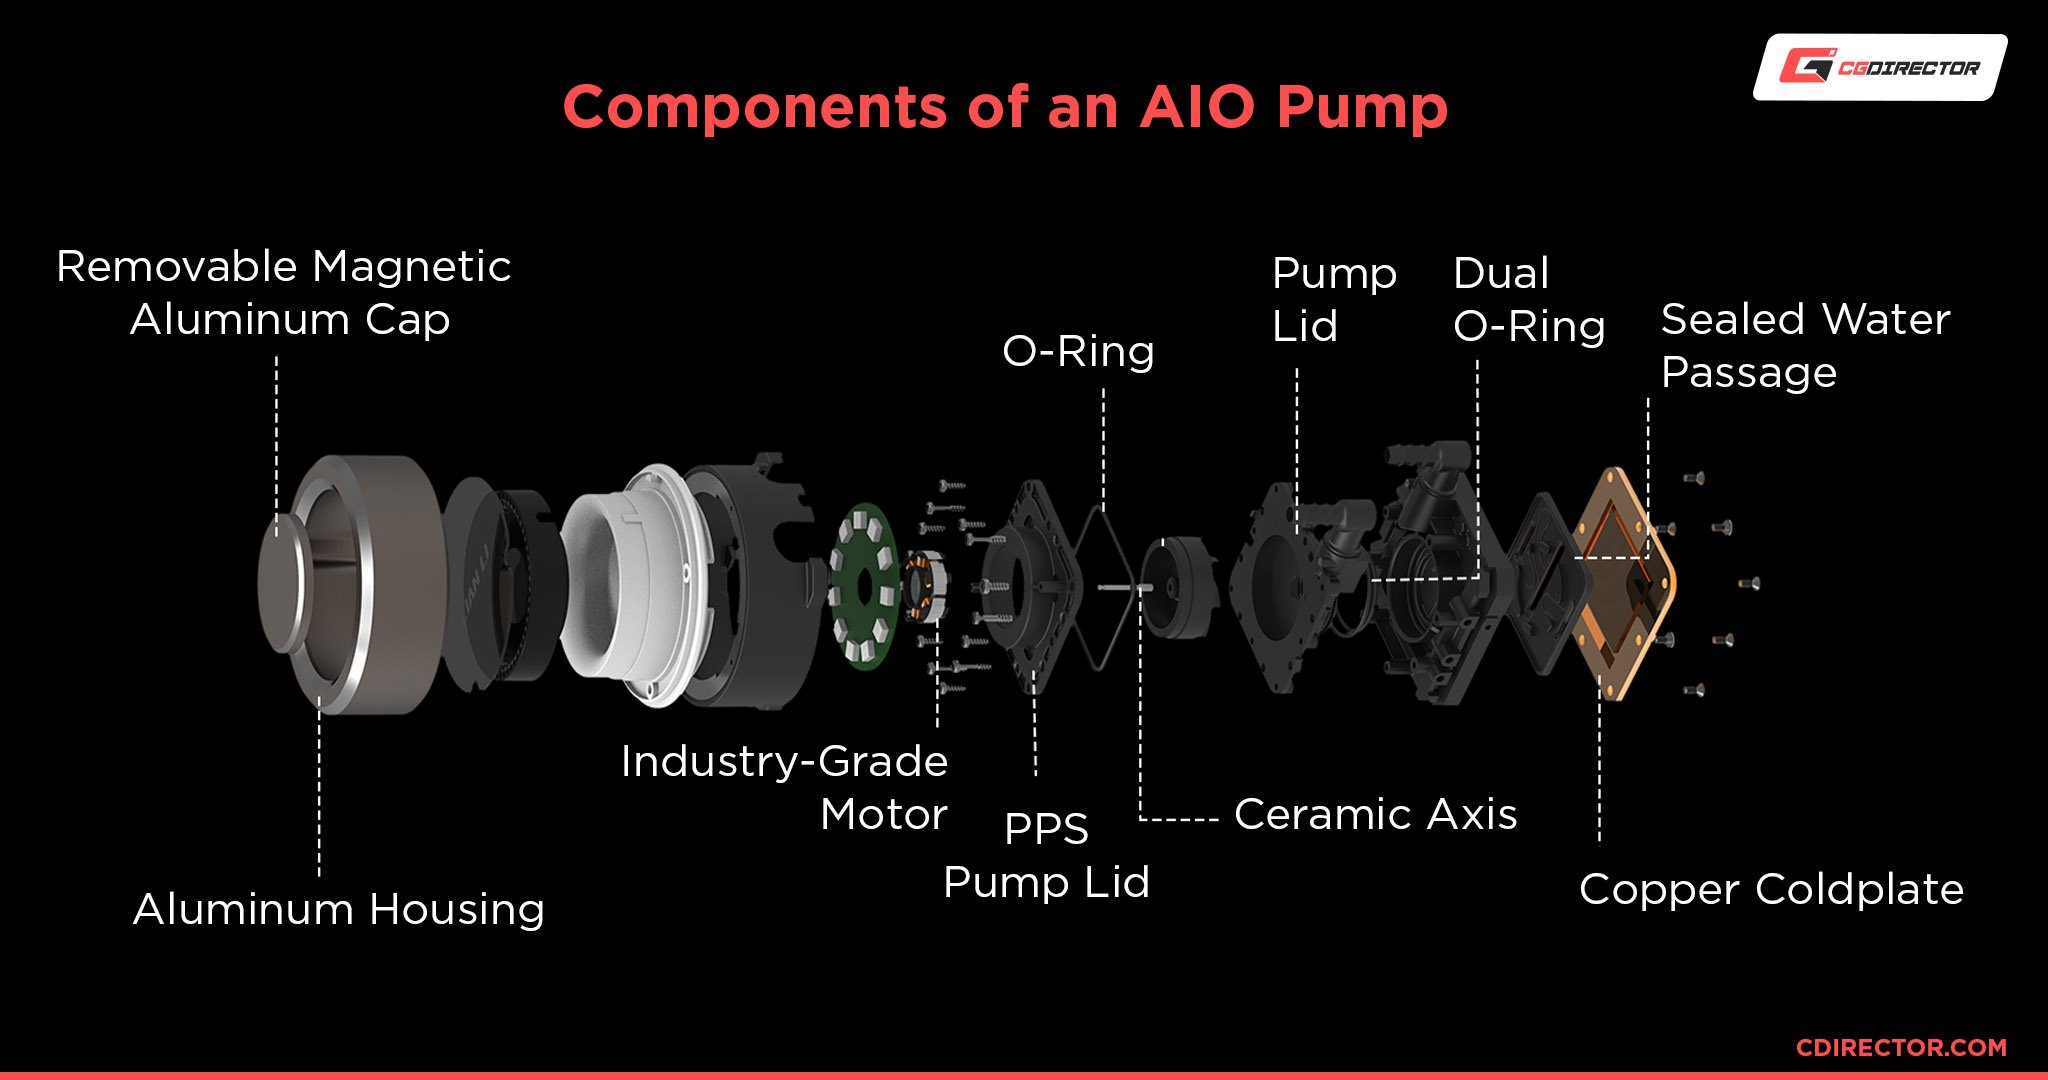 Components of an AIO Pump